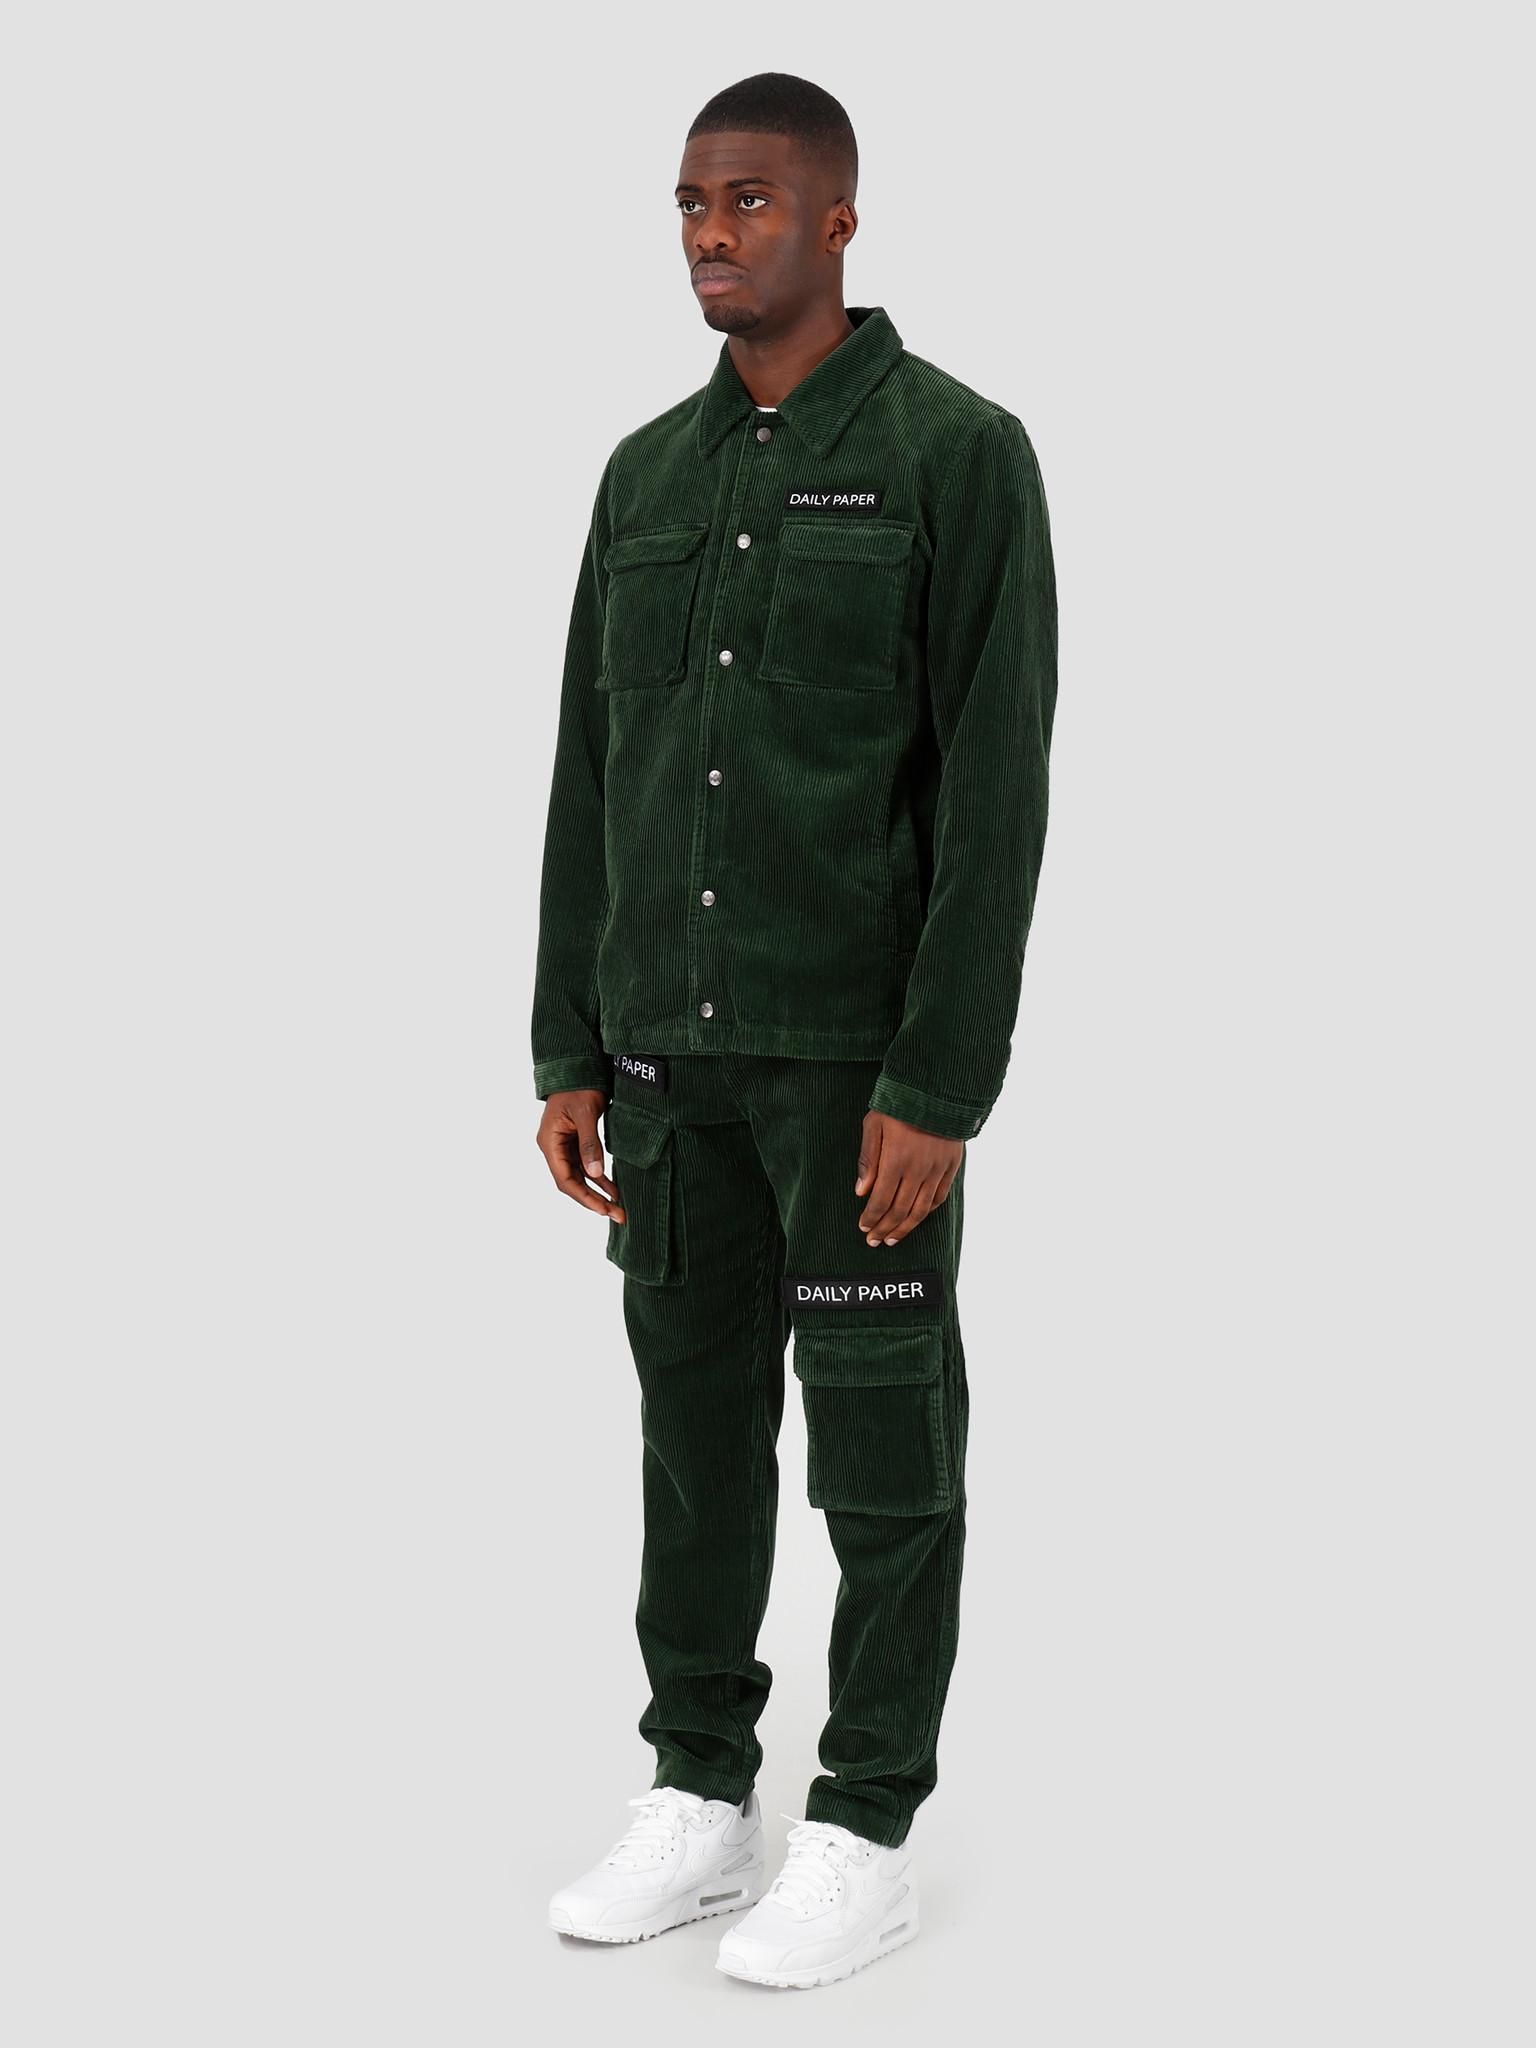 Daily Paper Daily Paper Cargo Jacket Corduroy Mountain View Green 19H1OU01-01